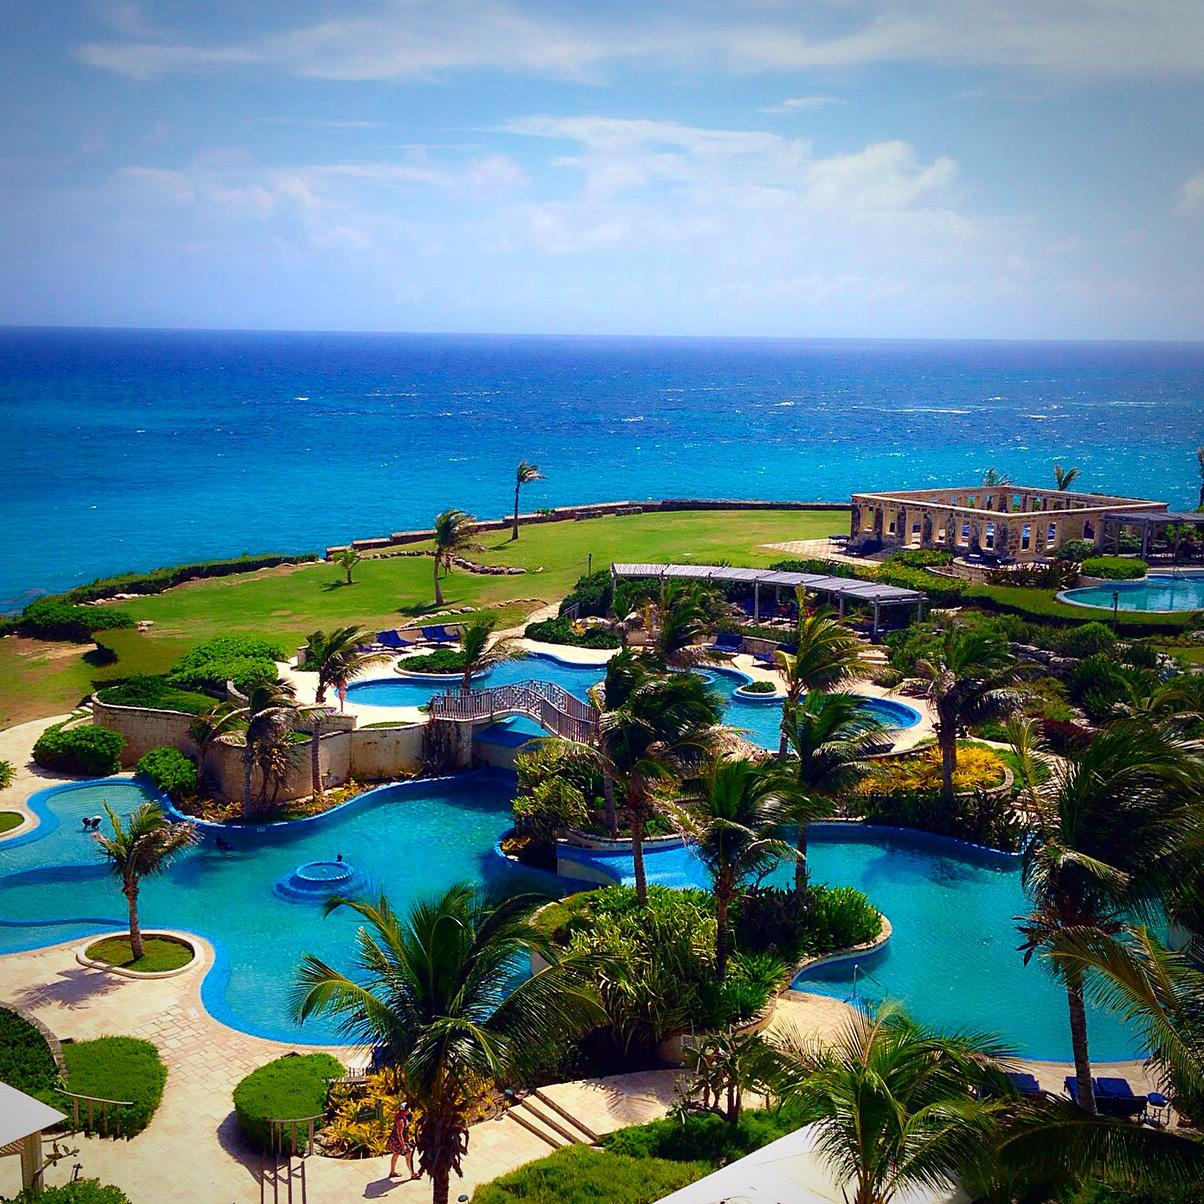 5 Reasons Why The Crane is The Perfect Choice for Your Barbados Getaway